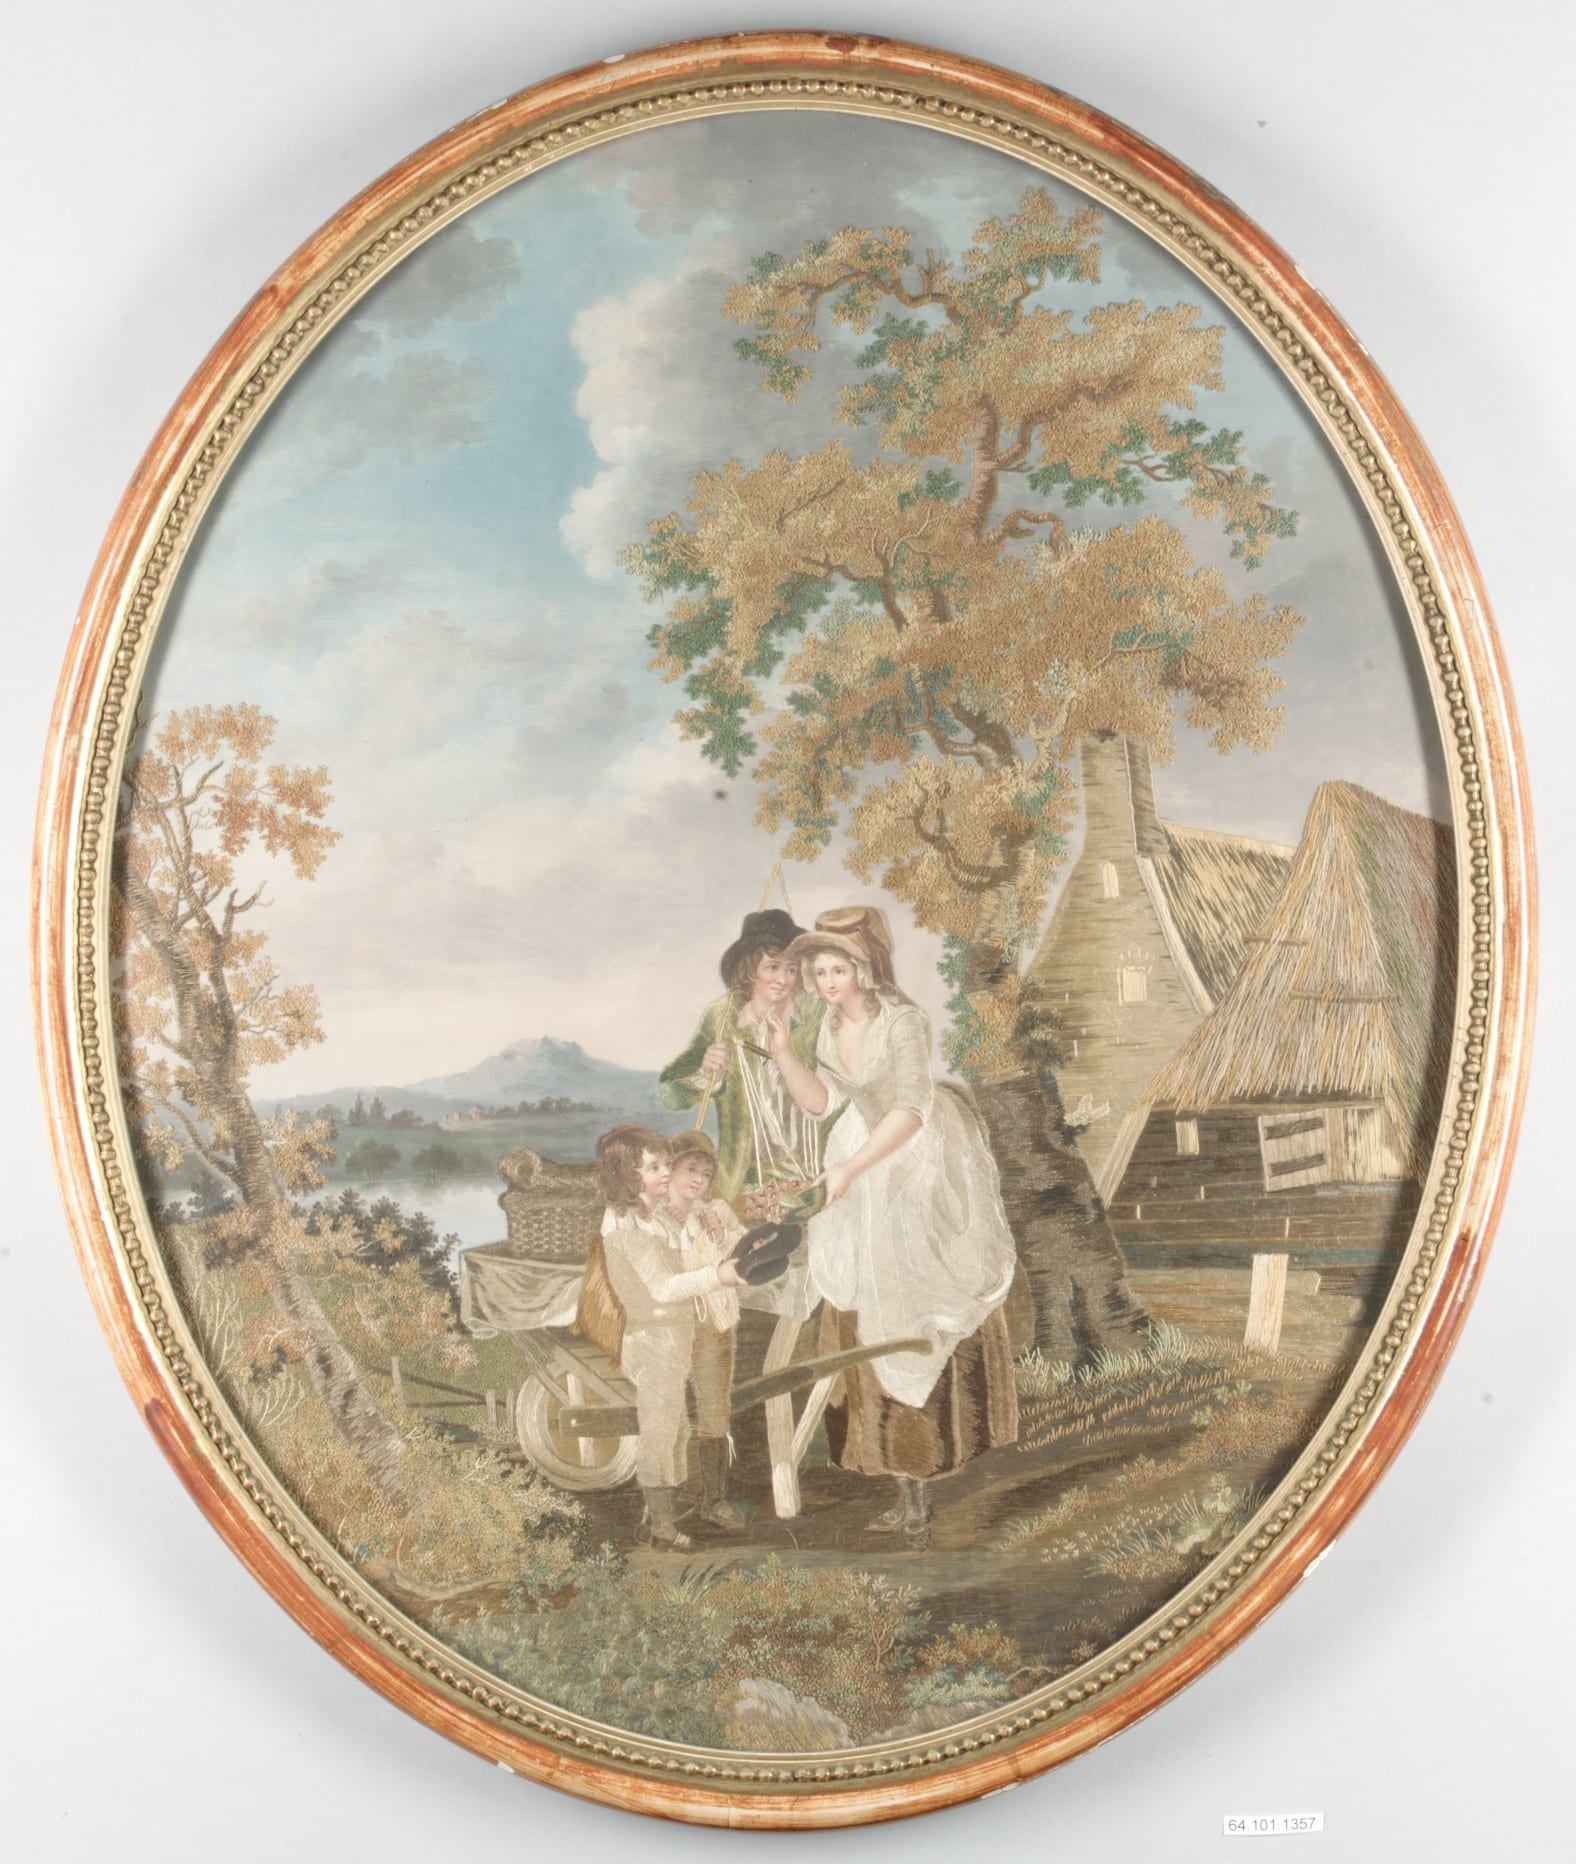 This oval embroidery shows a woman with a scale overflowing with cherries, two young boys holding out a hat filled with cherries, and a man with a whip standing behind the woman's shoulder and gazing amorously at her face. They are in a pastoral landscape with a mountain and lake in the far background and a house and barn with thatched roofs in the nearer background.